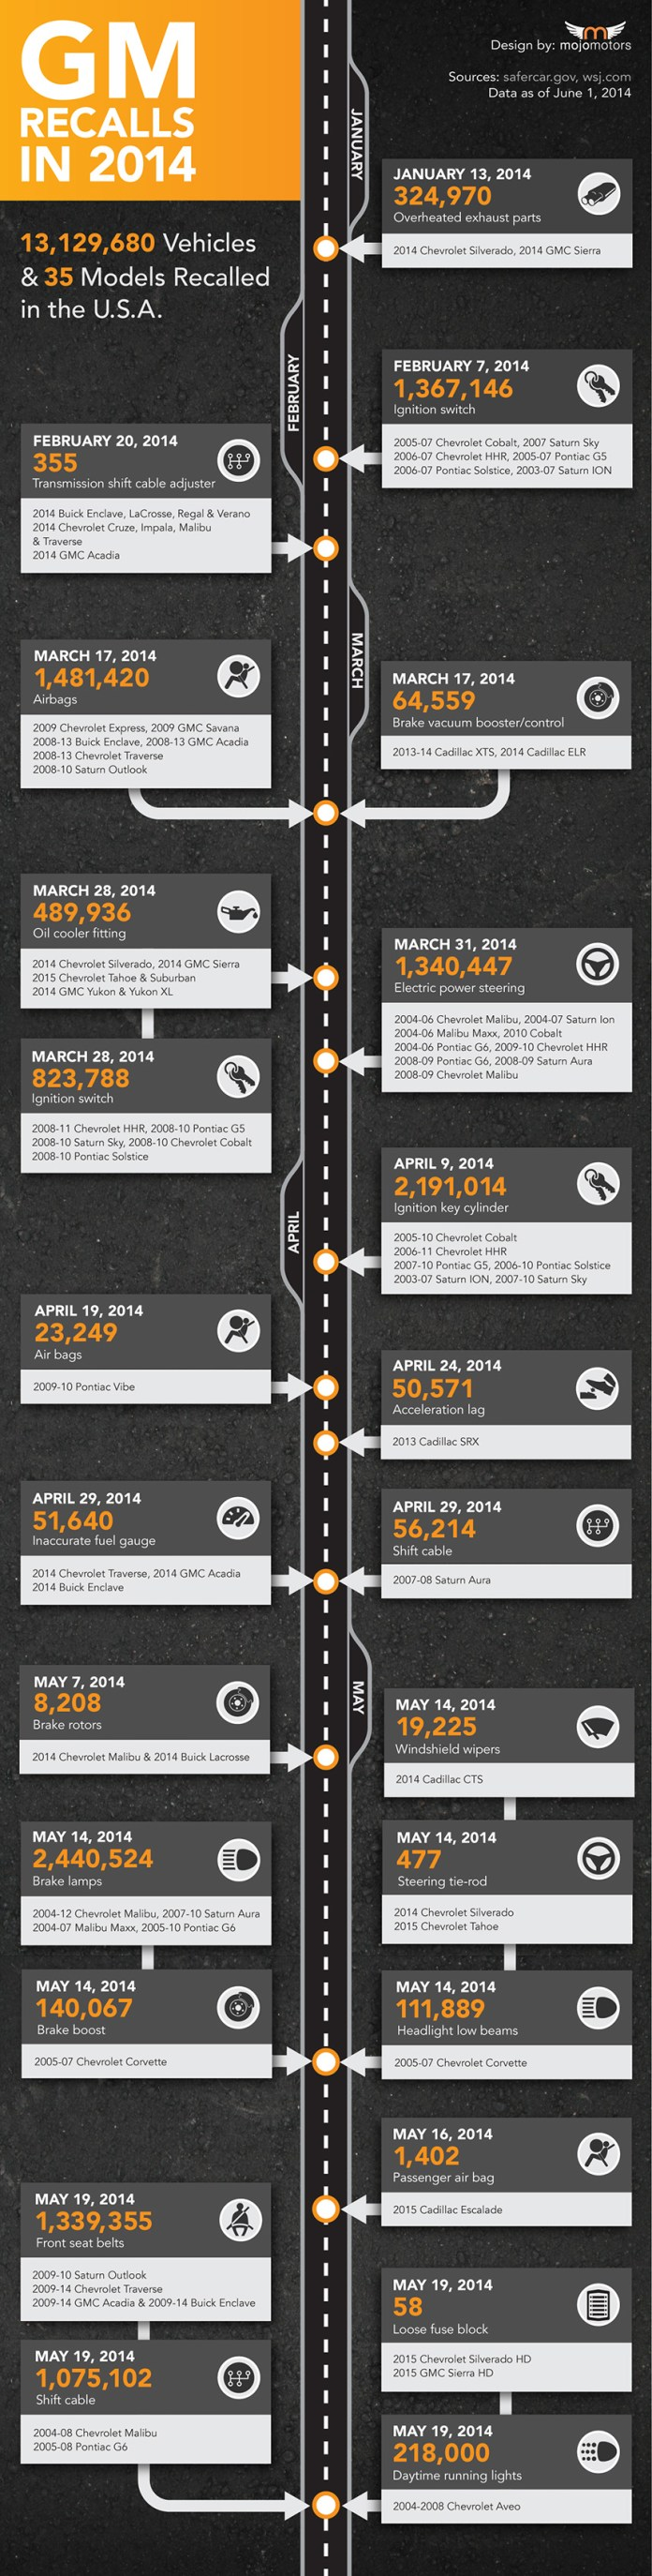 2014-Number-of-GM-Recalls-US-Infographic2